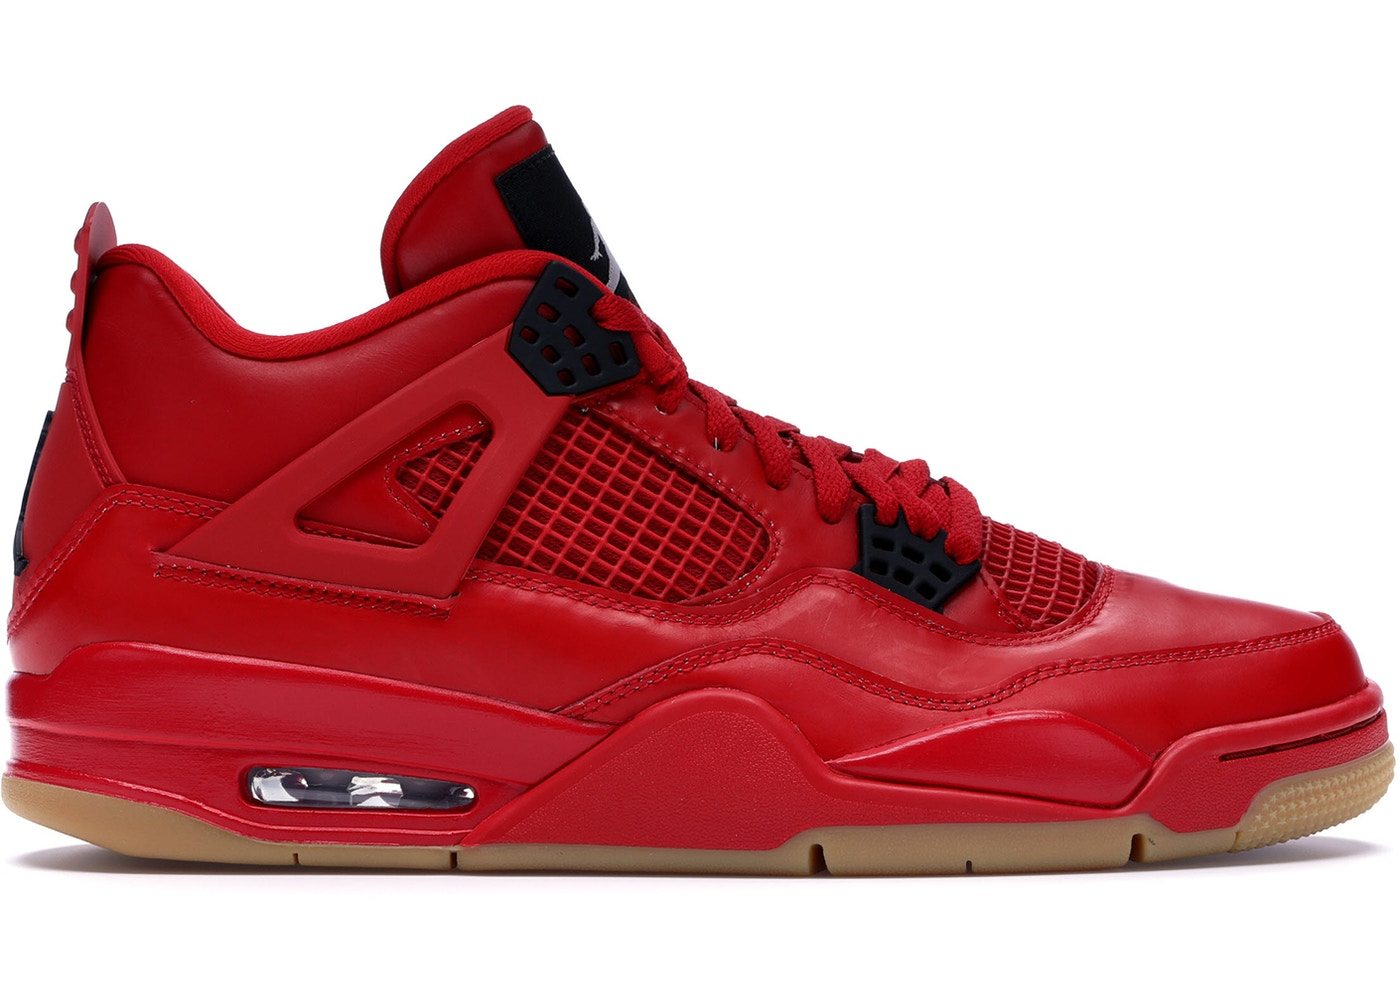 Jordan 4 Retro Fire Red Singles Day 2018 (W) - AV3914-600 c1c4b3deb